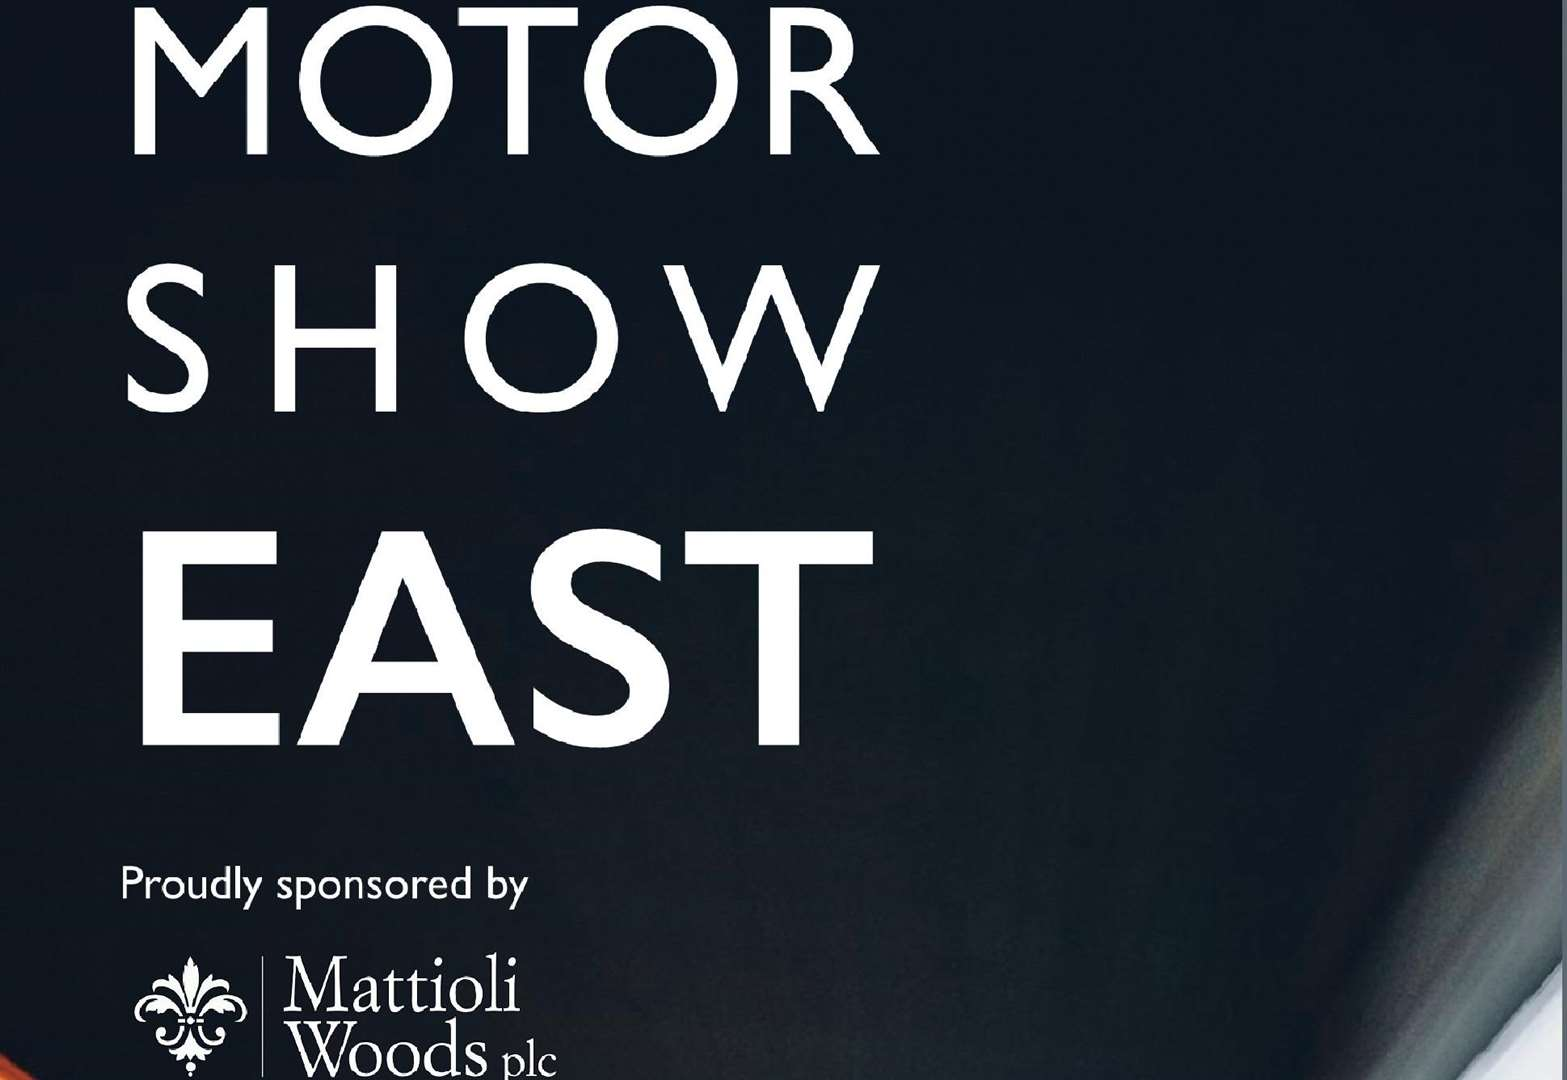 Celebration of everything automotive at Motor Show EAST